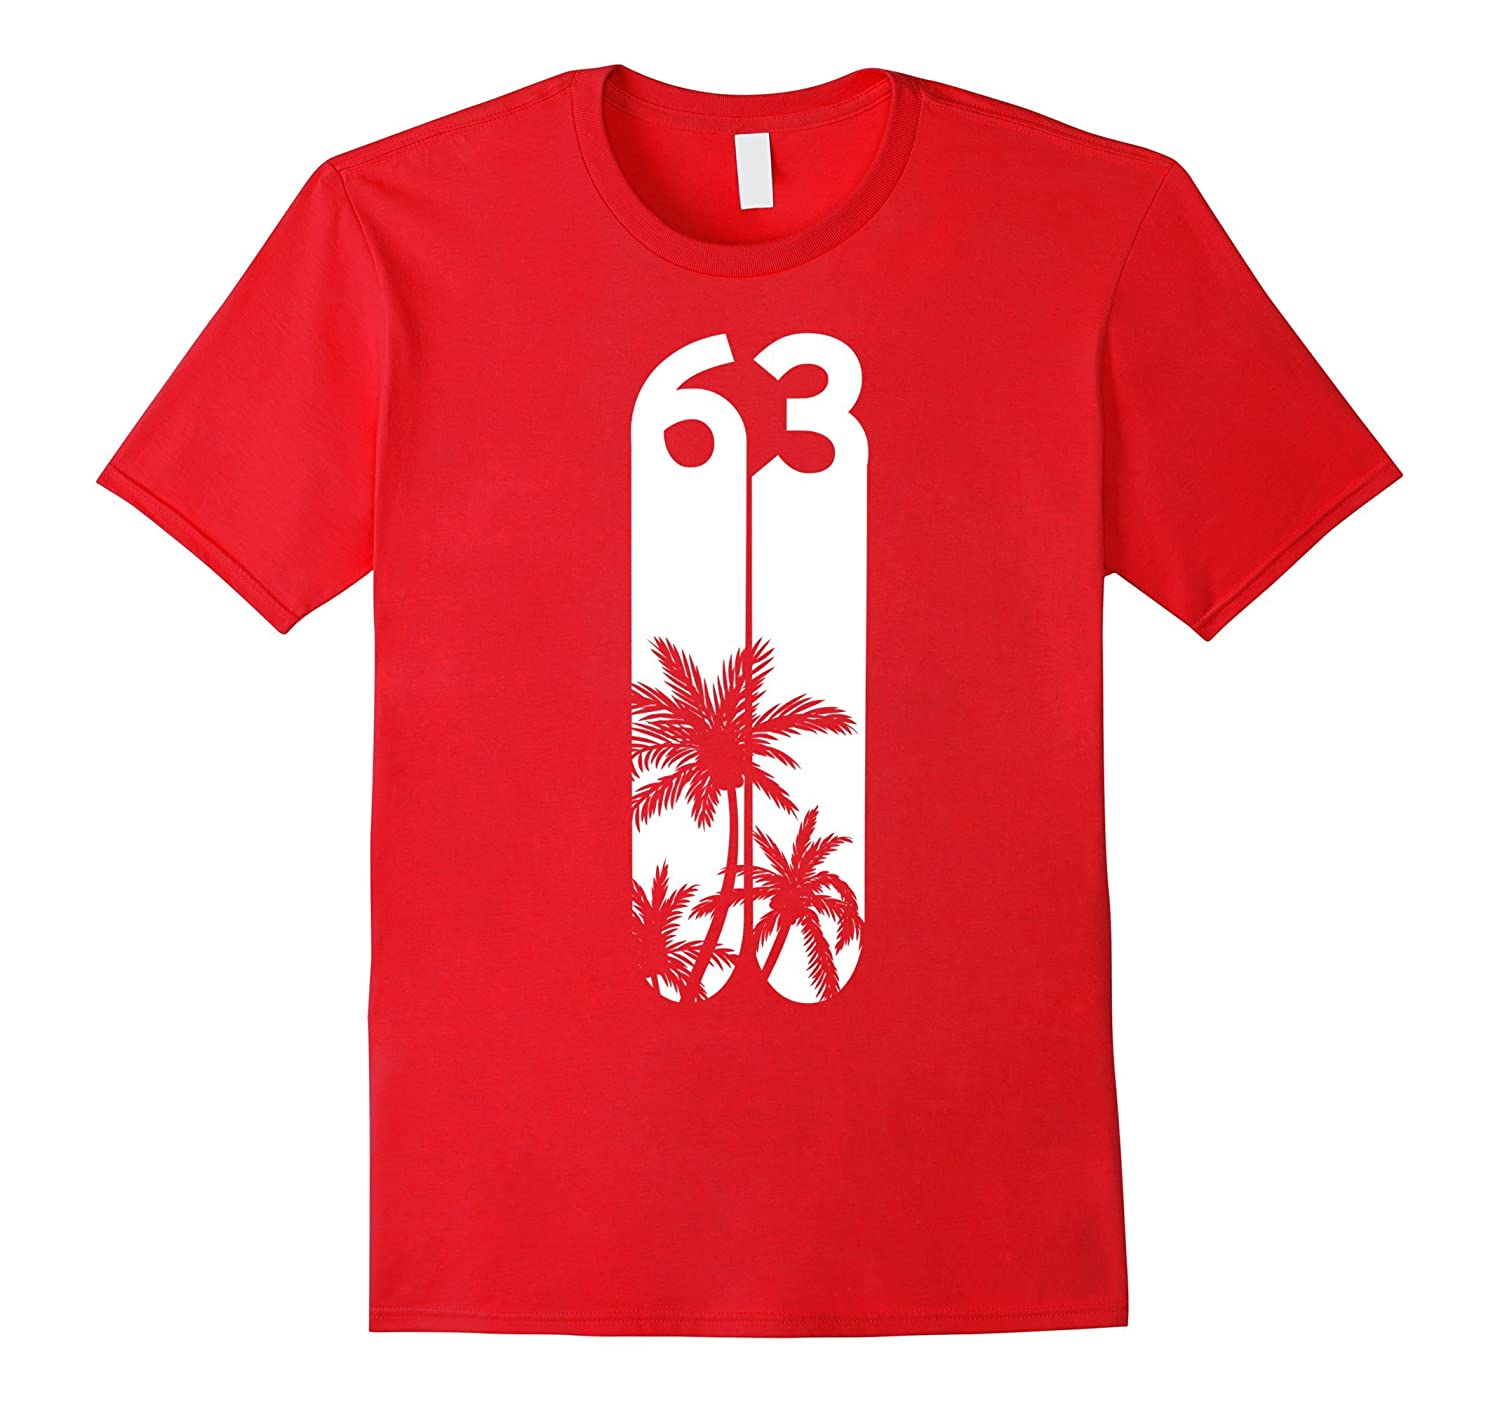 Big Number 63 Cute Graphic T-Shirt-PL